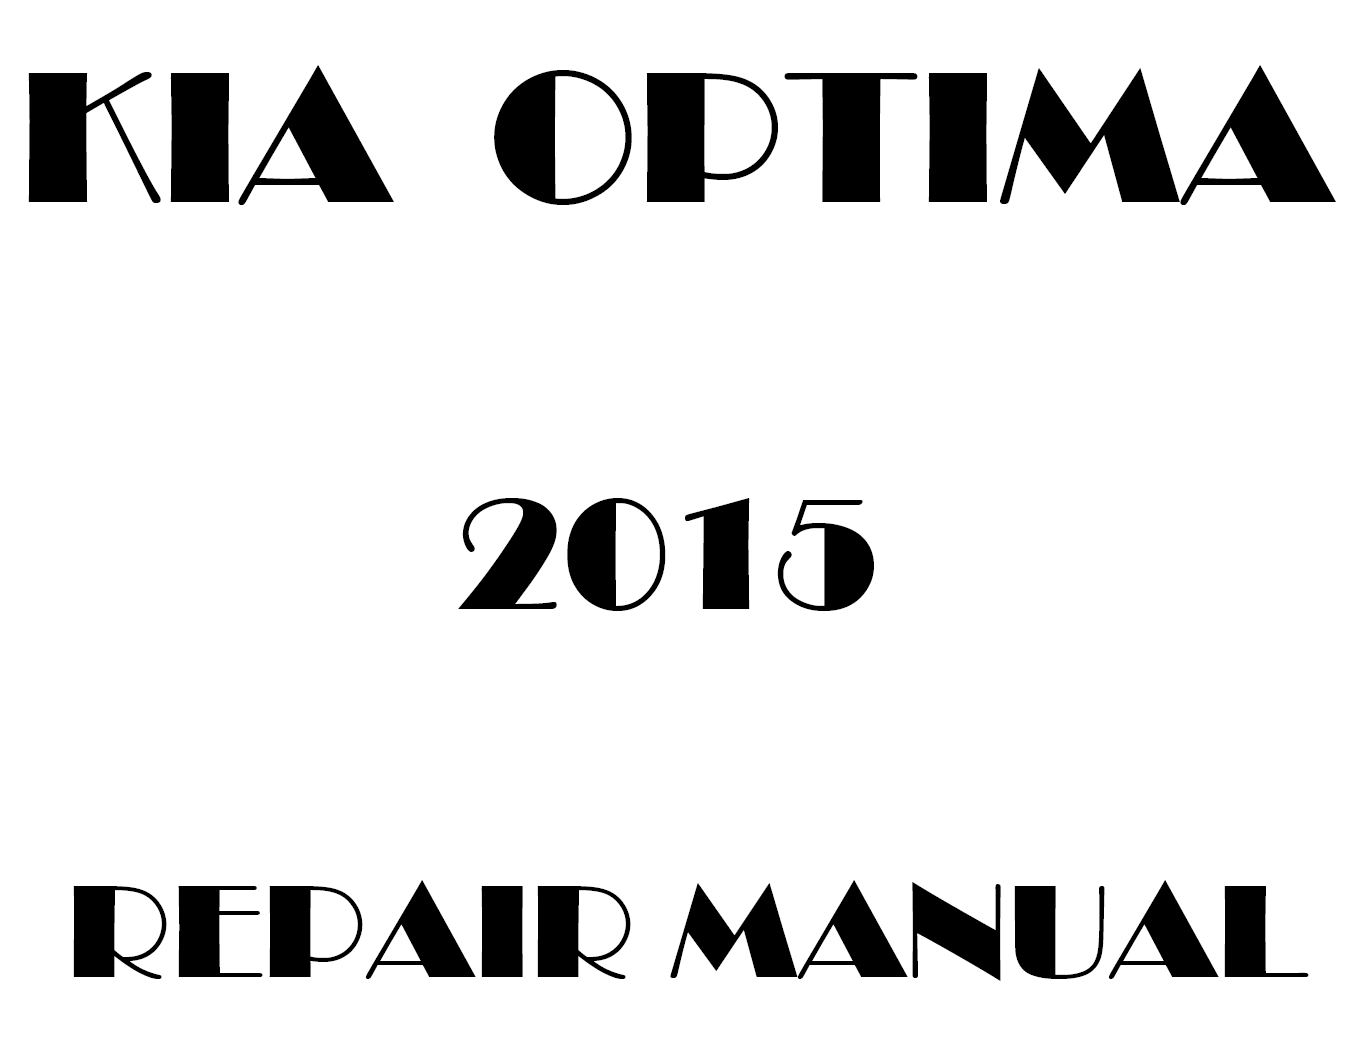 2015 Kia Optima repair manual